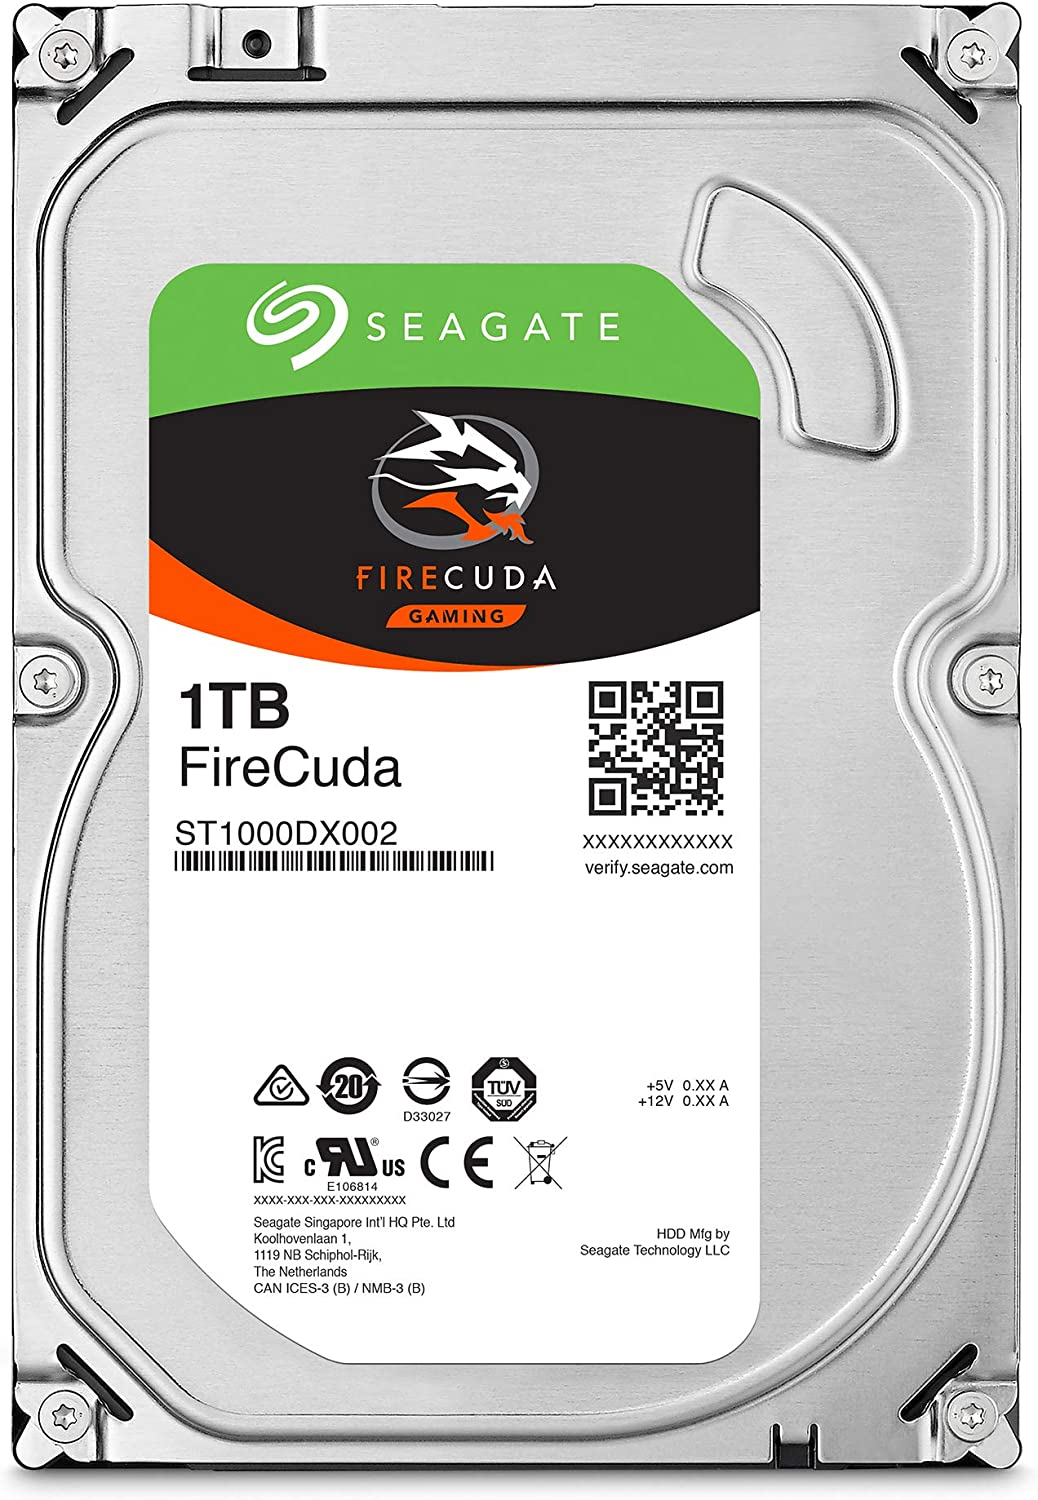 Seagate 250GB 7200RPM SATA III 6Gb//s di cache 8MB HDD DISCO RIGIDO 3.5/""